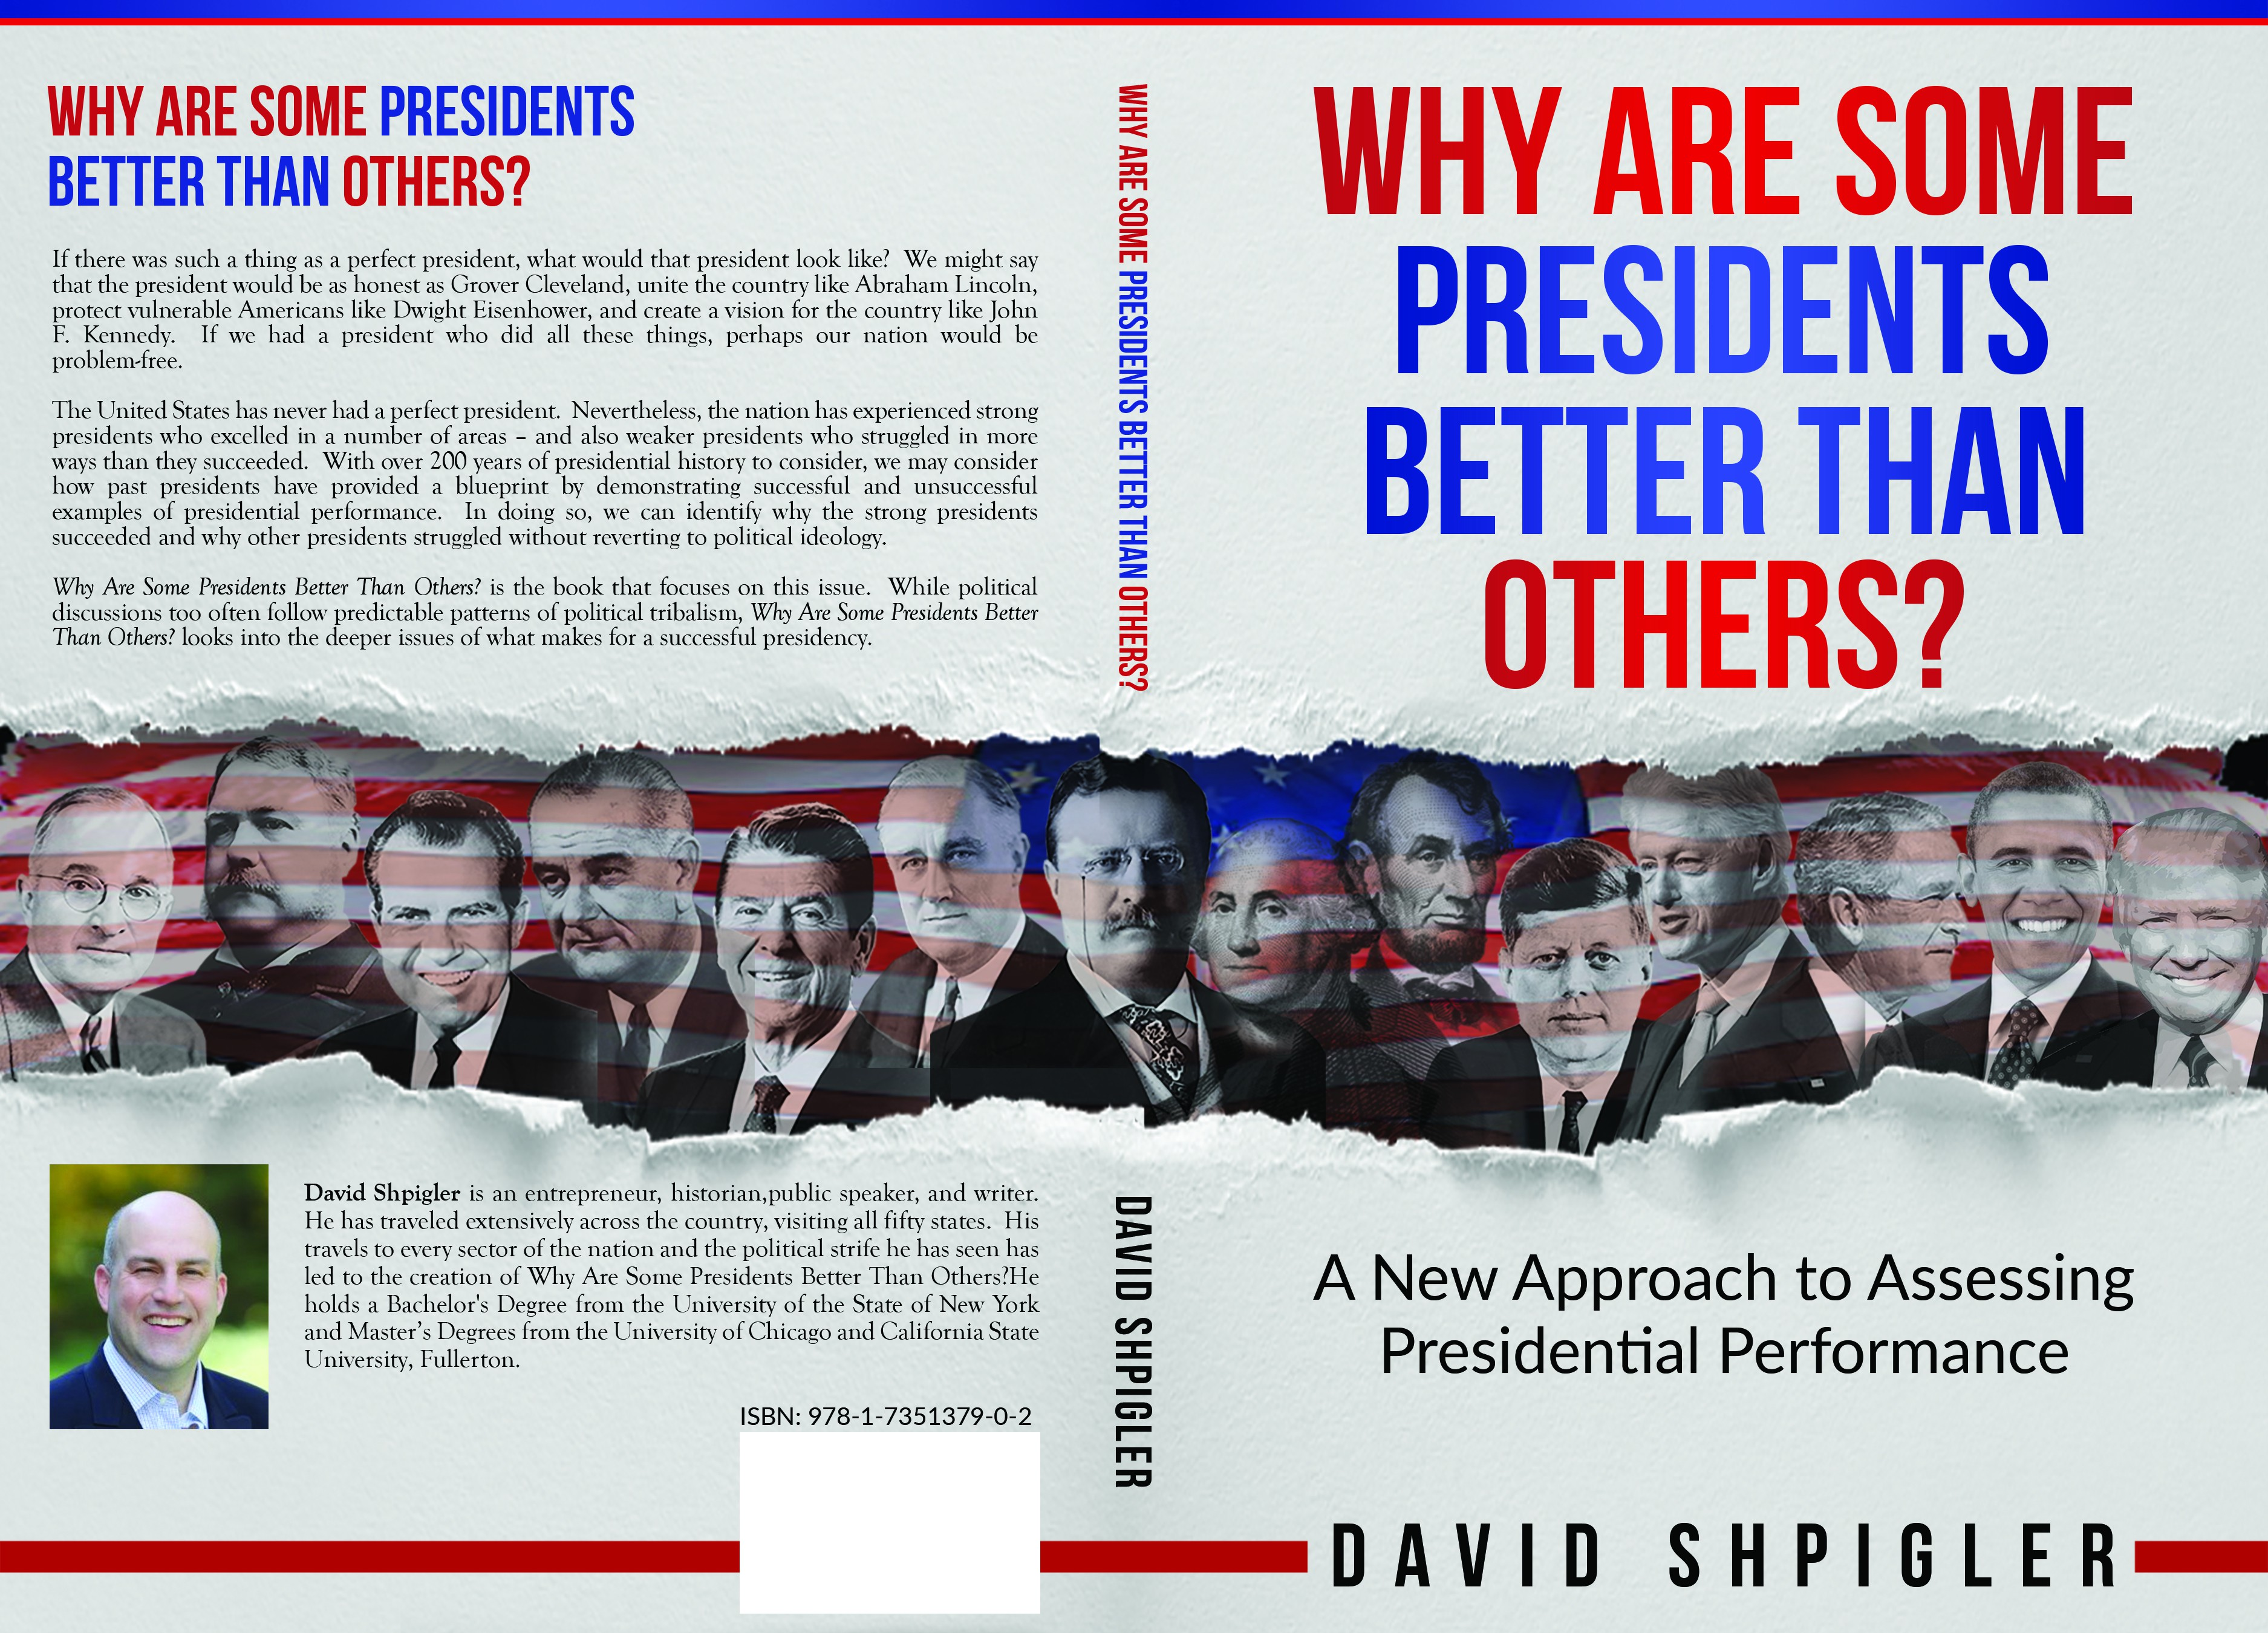 Why Are Some Presidents Better Than Others?